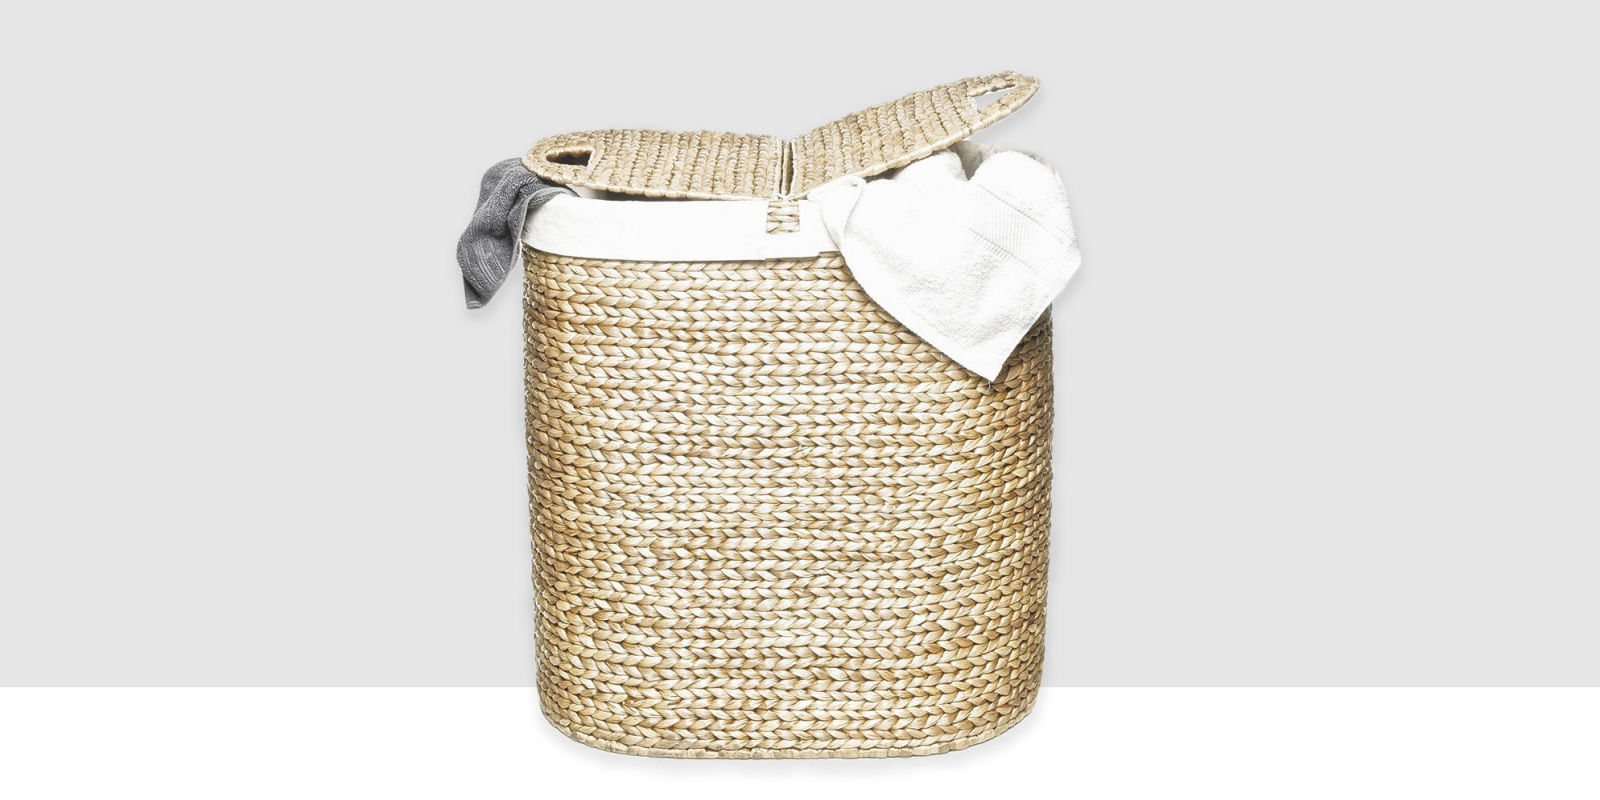 Elephant Hamper Wicker Affordable Mad For Wicker Bags